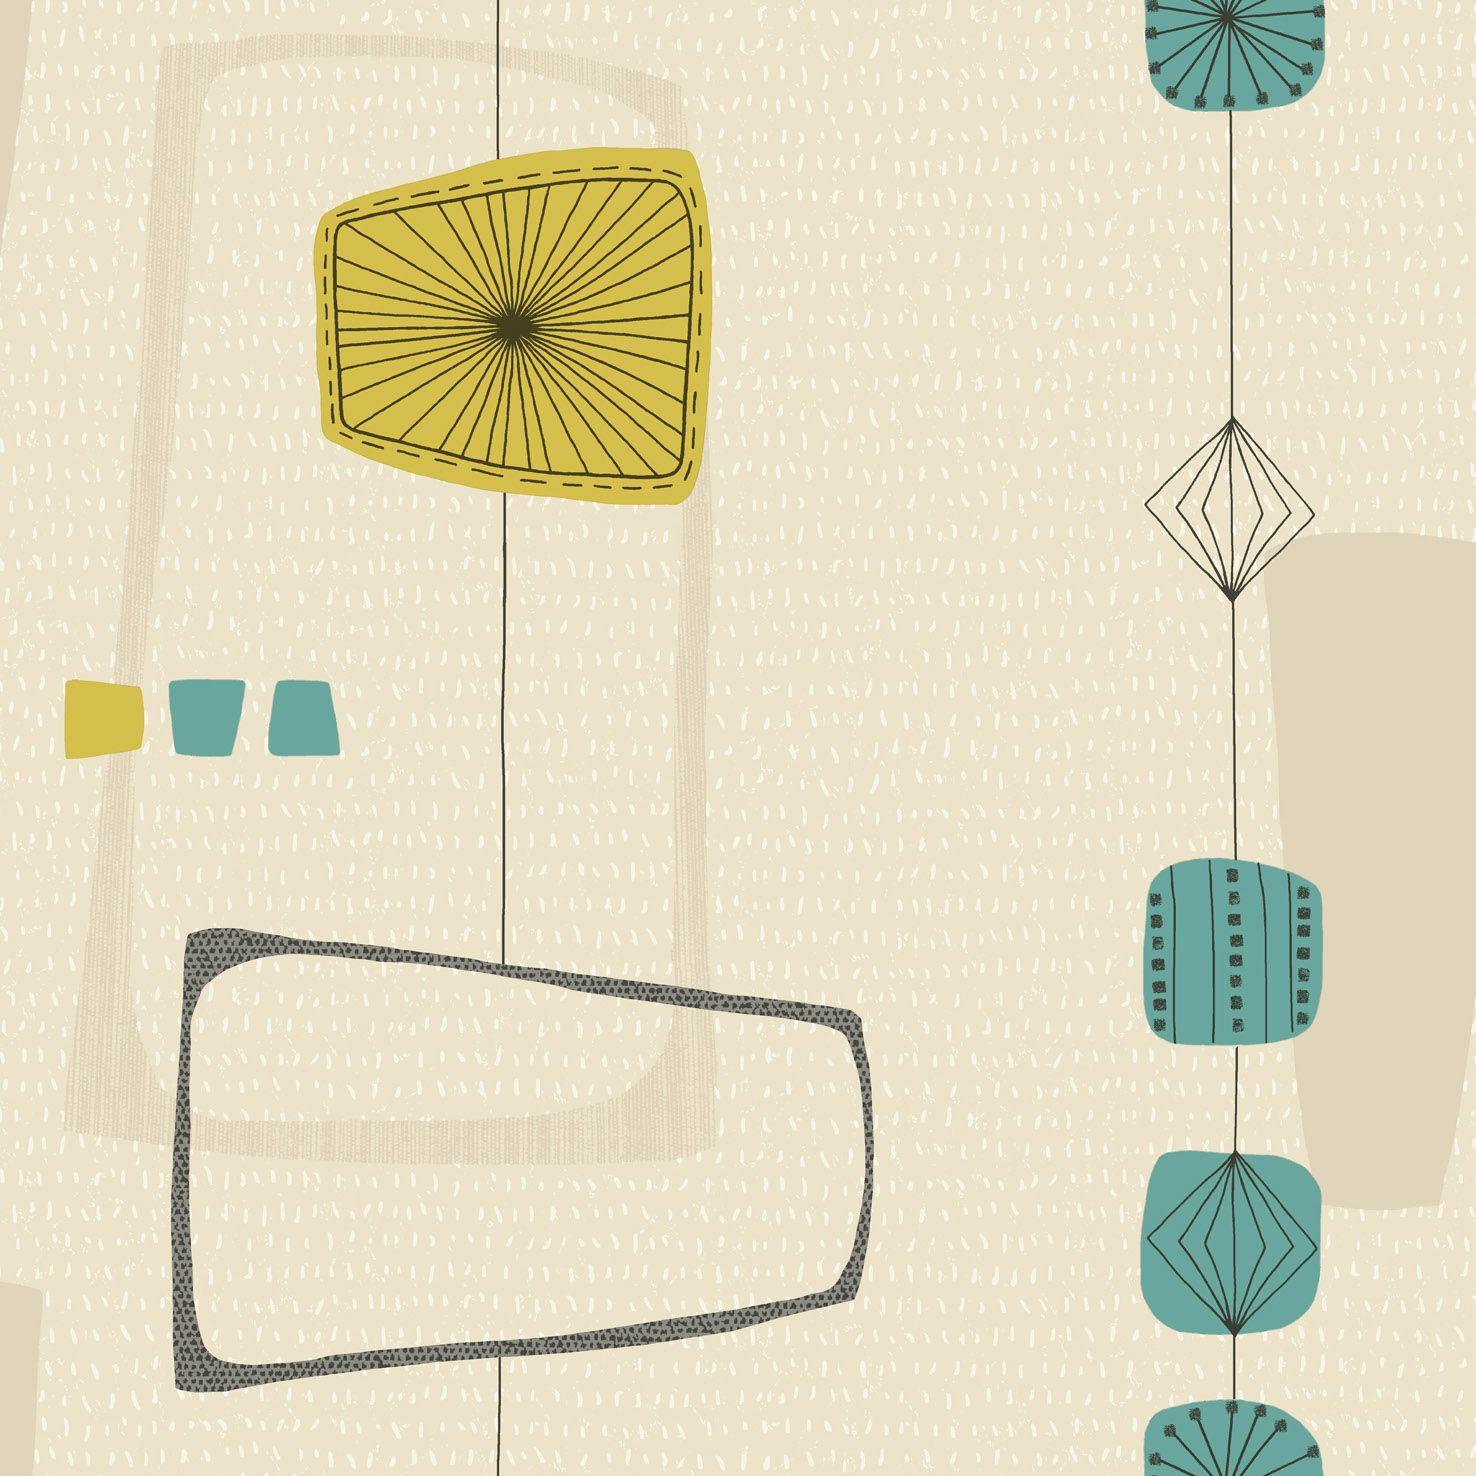 Marcelo - Teal/Mustard : Wallpaper and wallcoverings from Holden Decor Ltd. | Colors | Decor ...